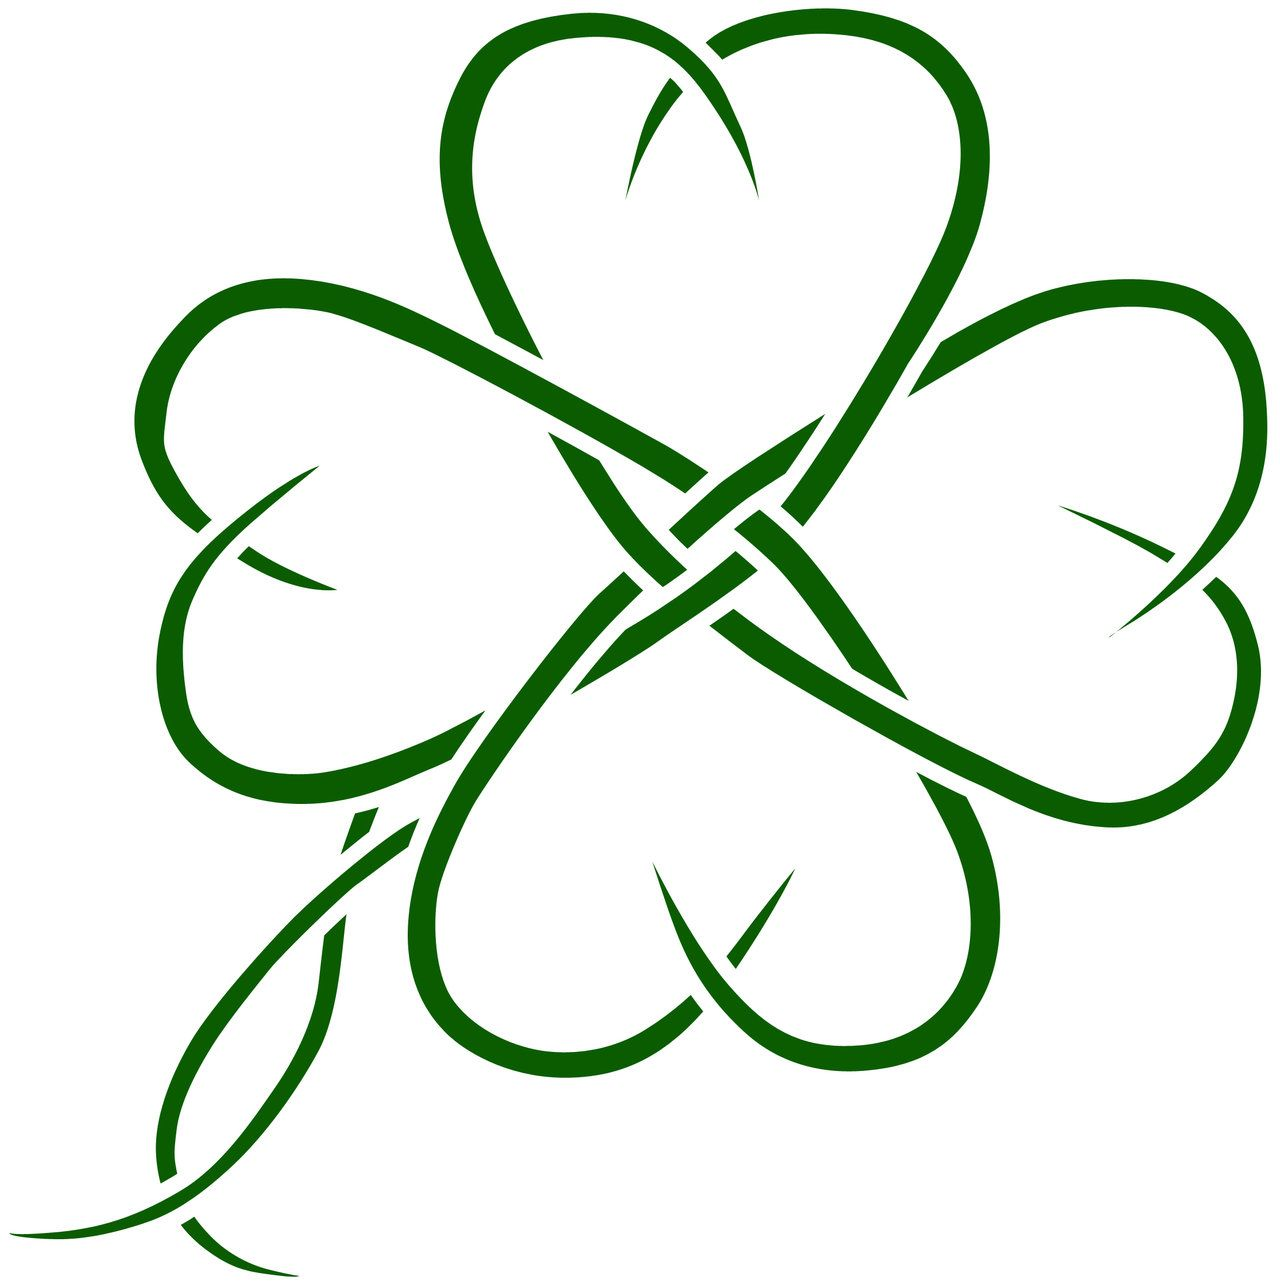 Four leaf clover tattoos designs ideas and meaning for Design 4 you